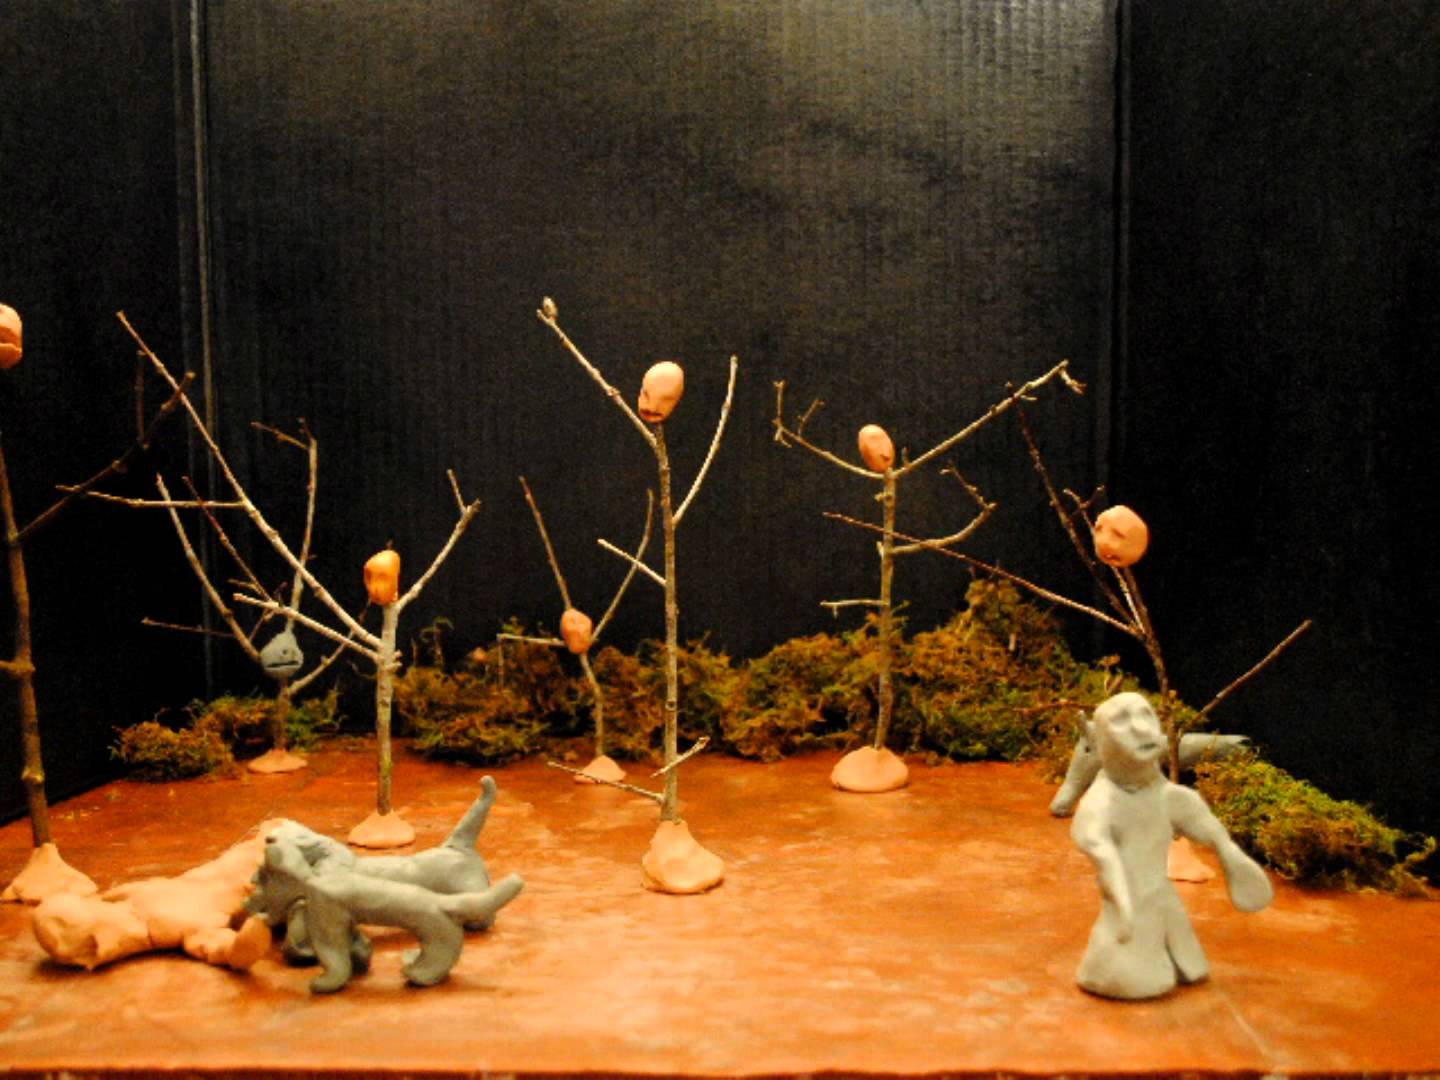 Dante's-Inferno-Claymation-Wood-Suicides-Squanderers